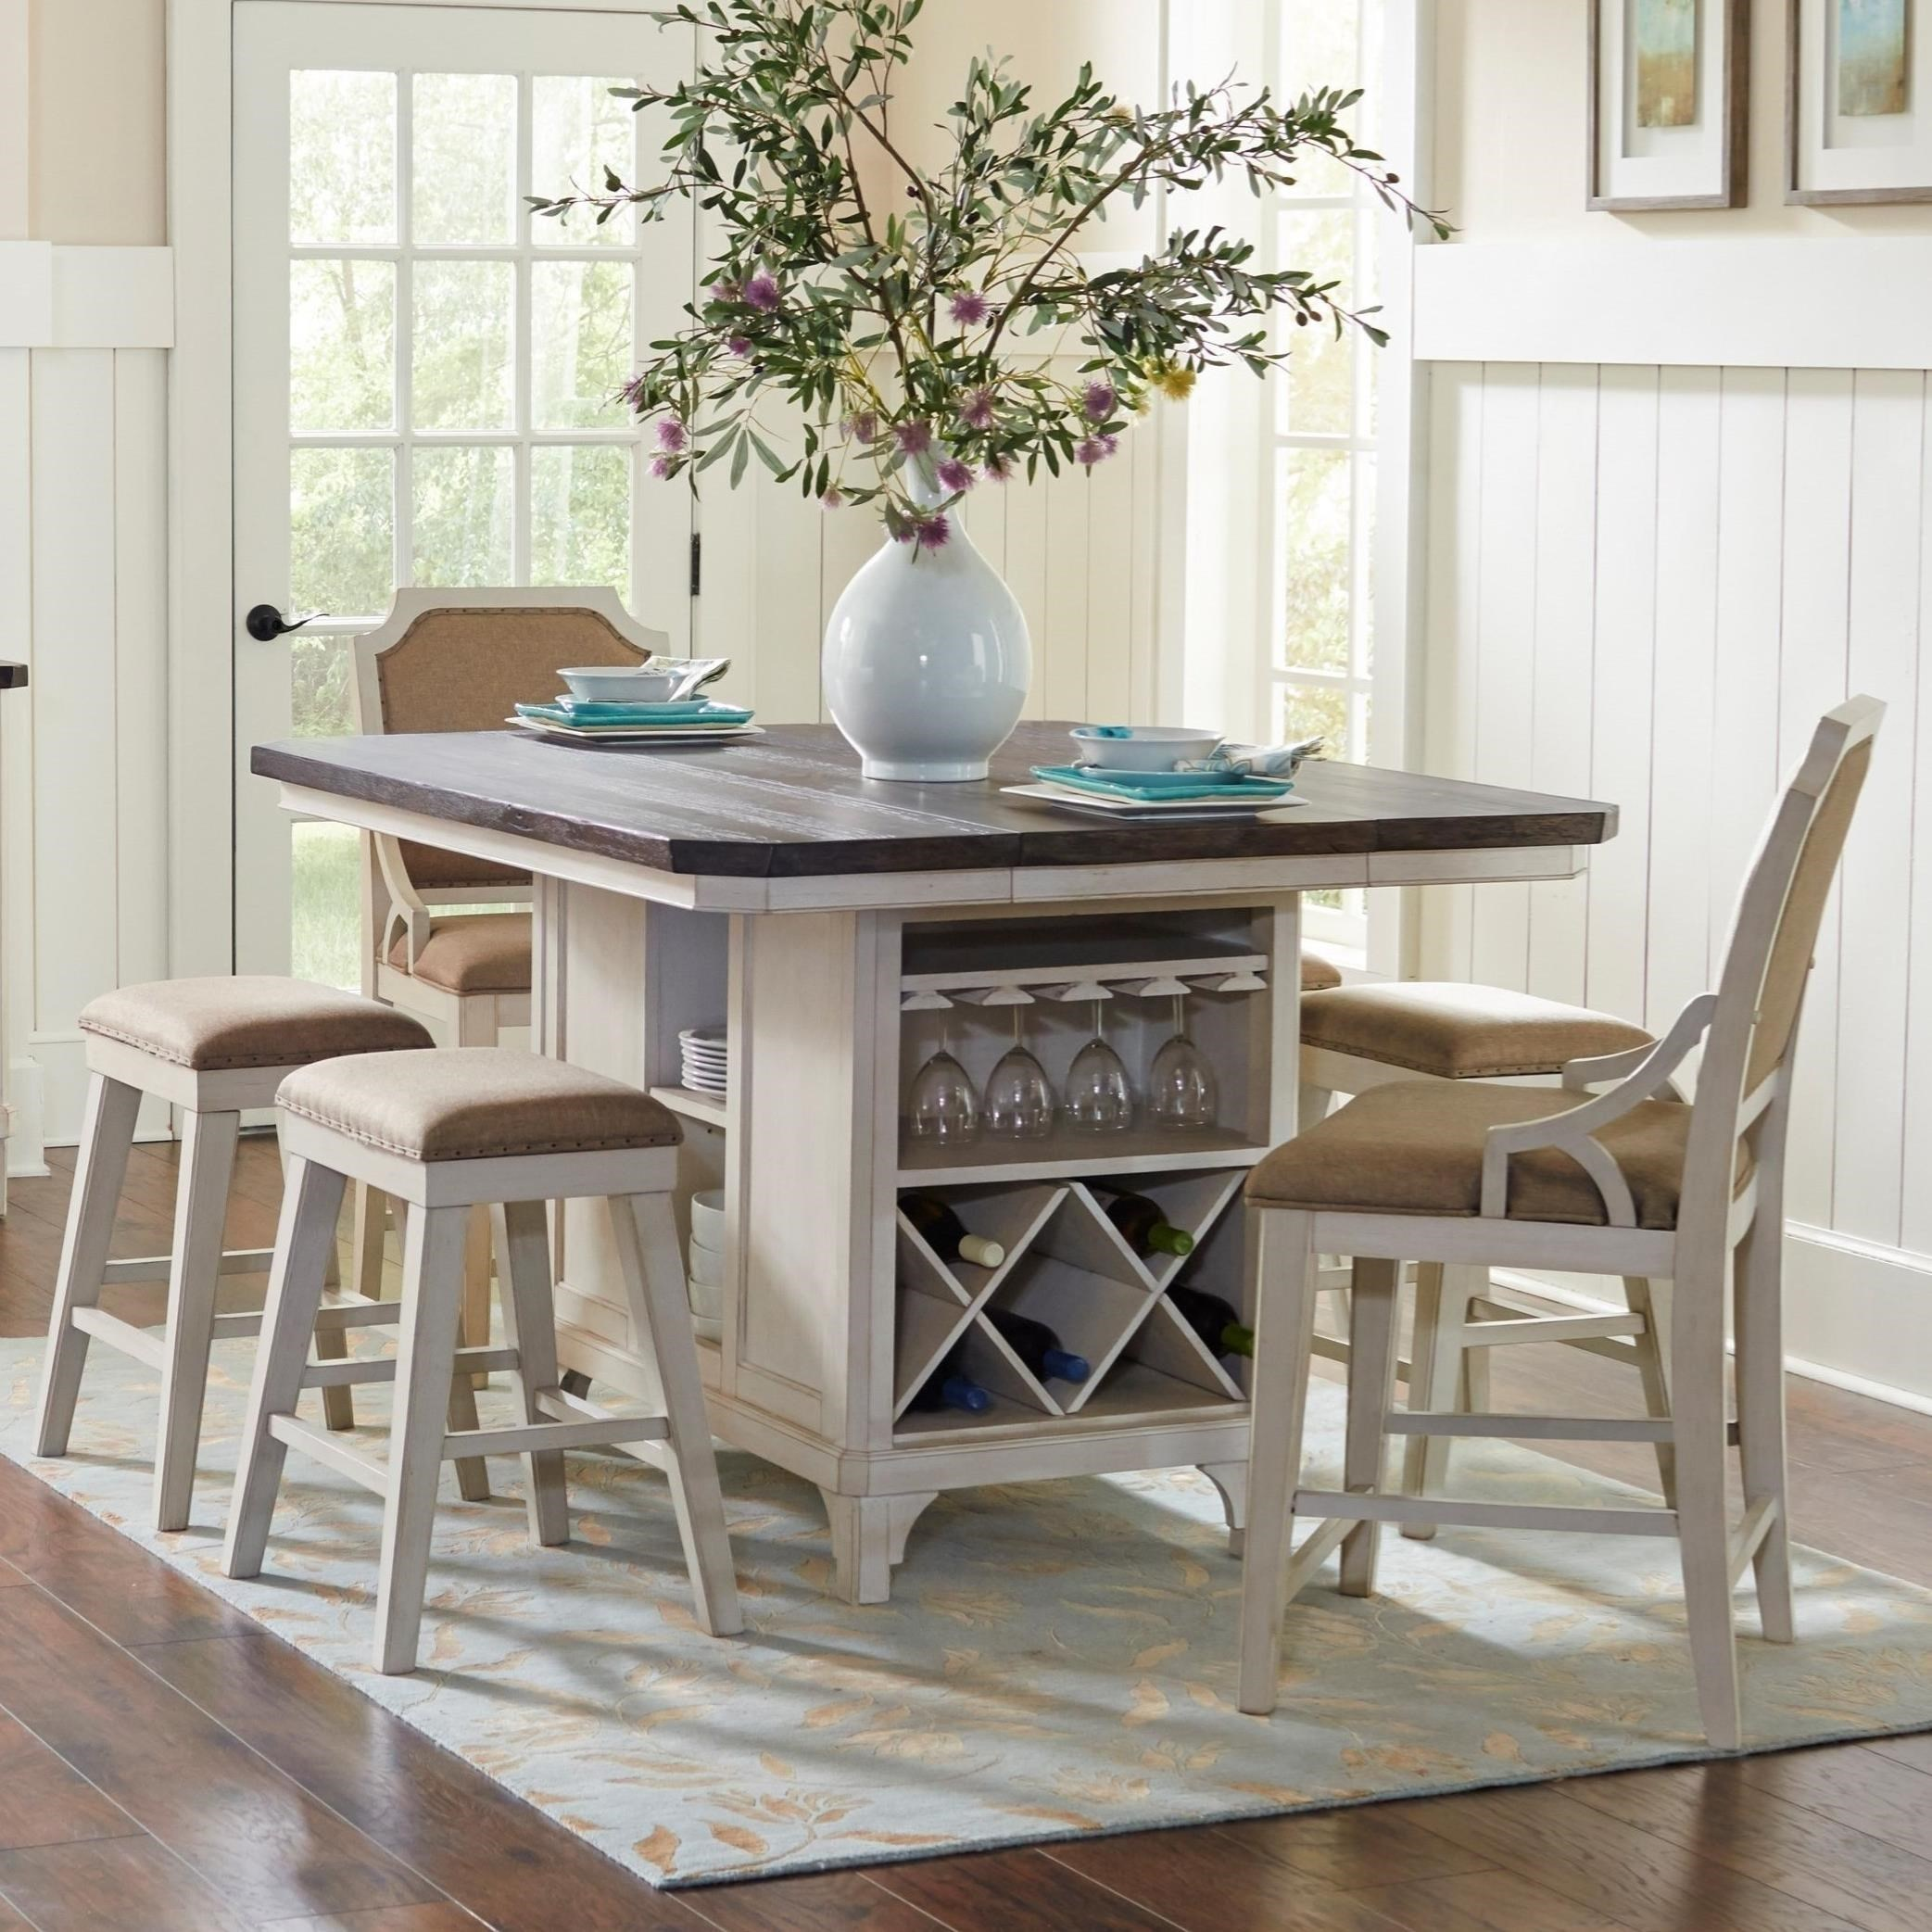 kitchen island table with chairs. Avalon Furniture Mystic Cay7-Piece Kitchen Island Table Set With Chairs